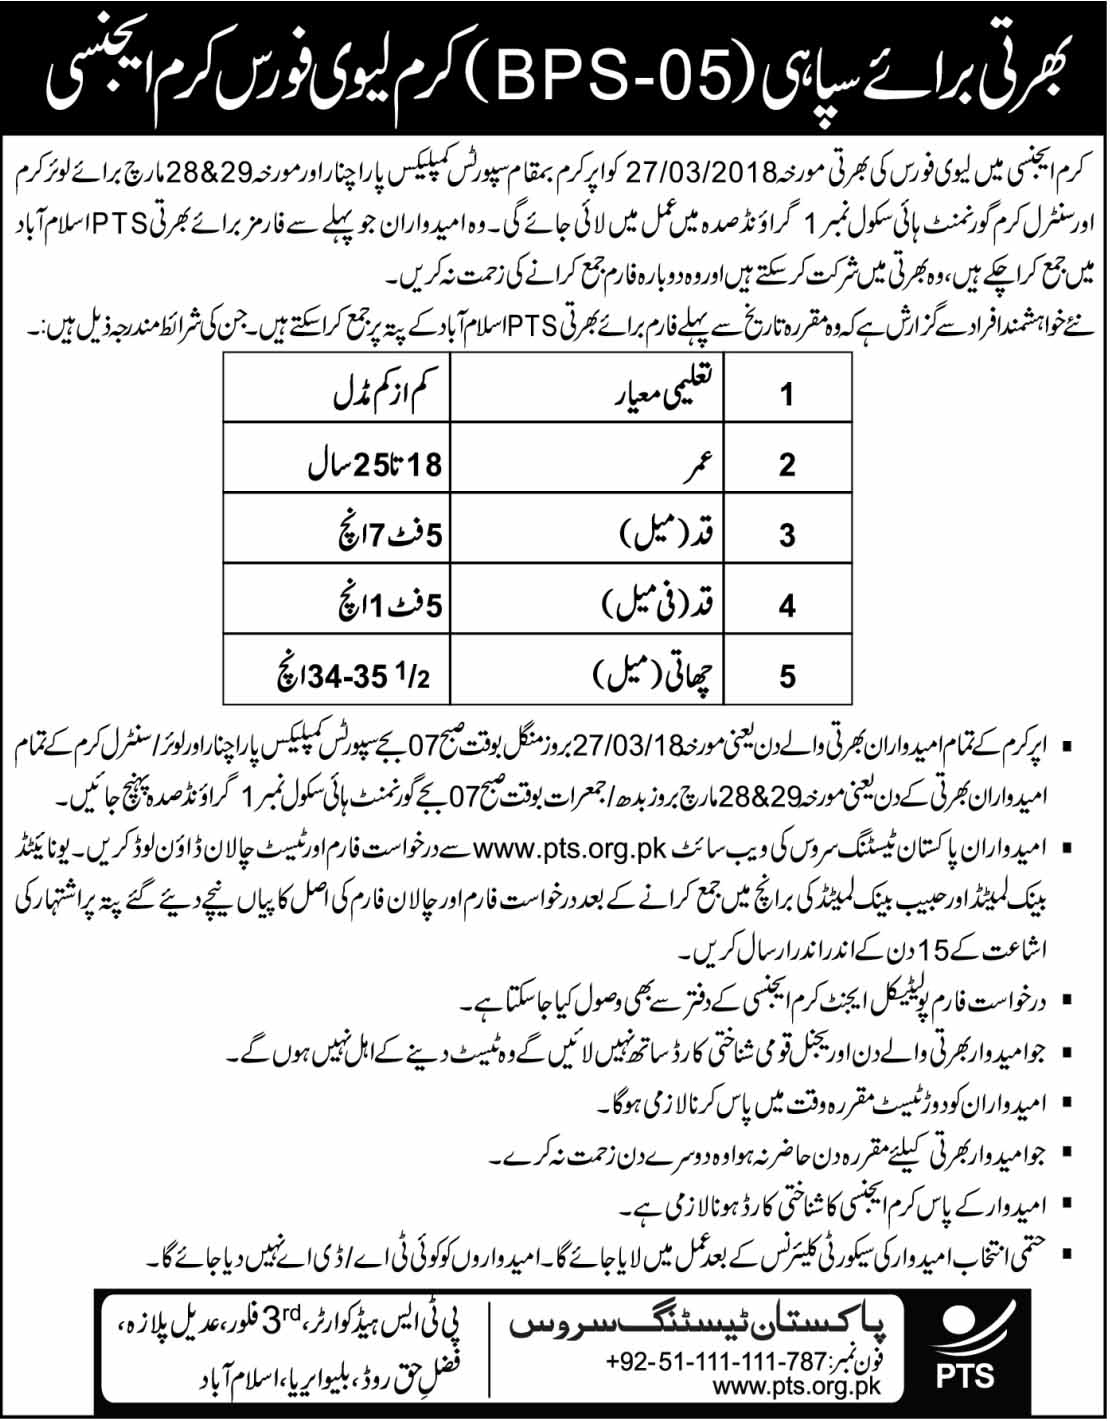 Levies Forces Jobs In Kurram Agency Via PTS Feb 2018